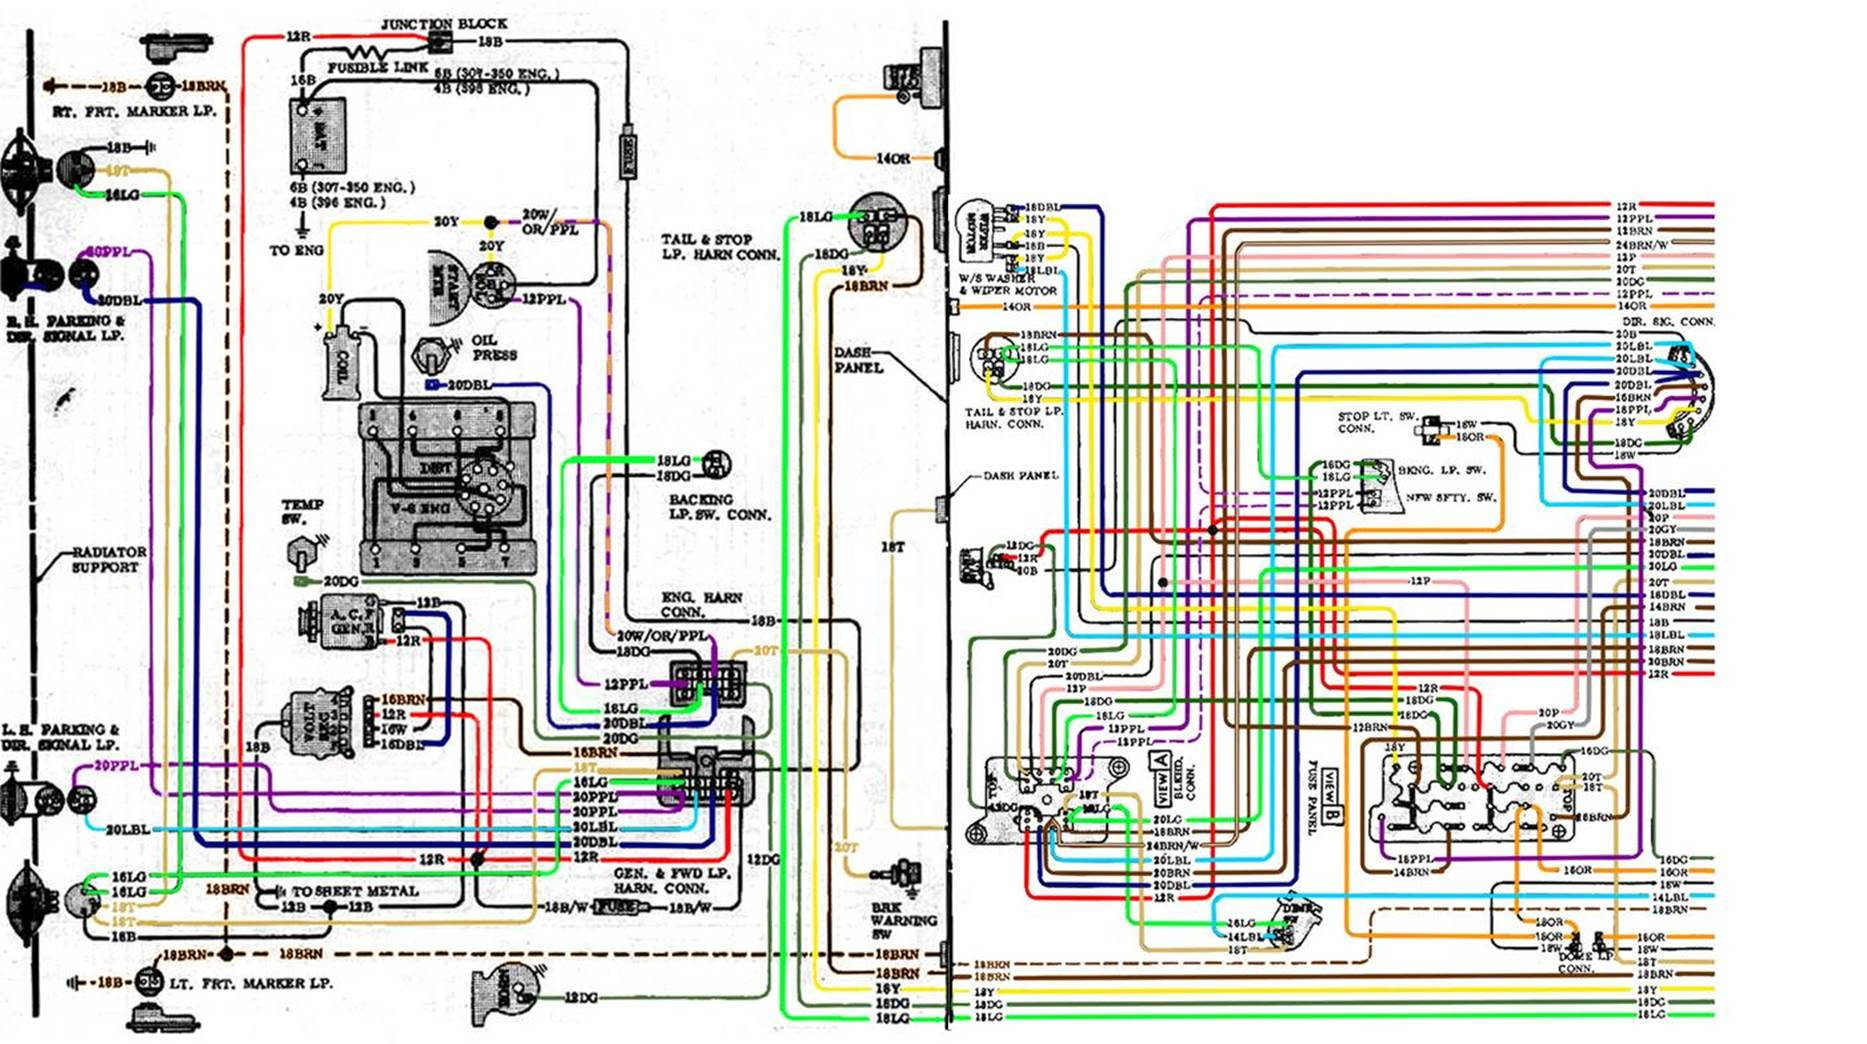 image002 68 nova wiring diagram wiring diagram simonand Wiring Harness Diagram at edmiracle.co